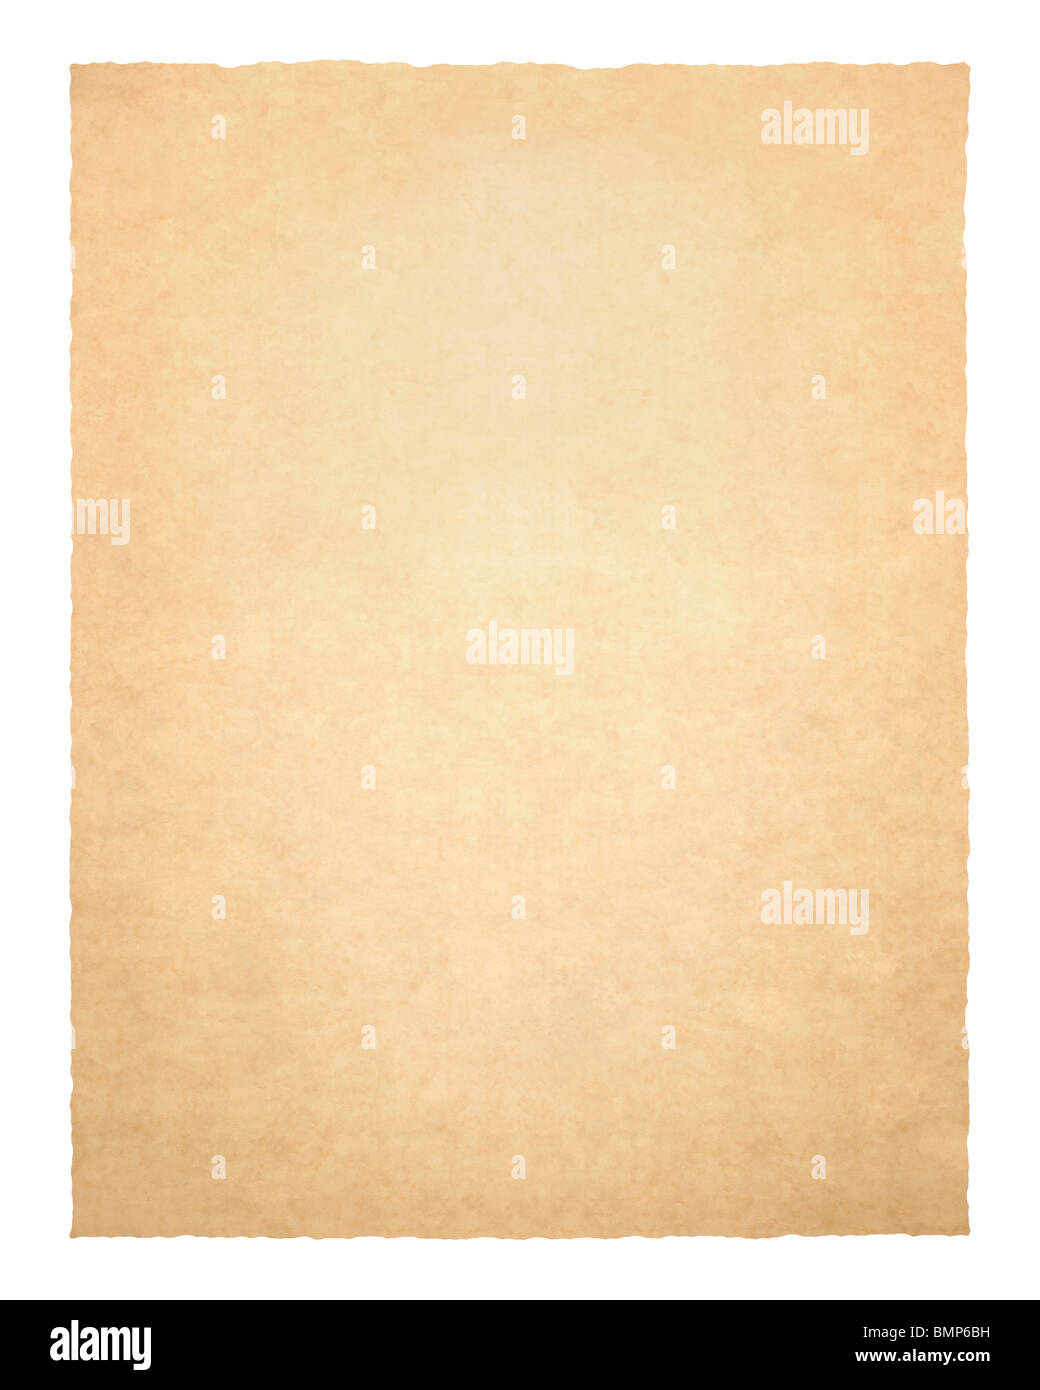 Old piece of paper isolated against a white background. - Stock Image